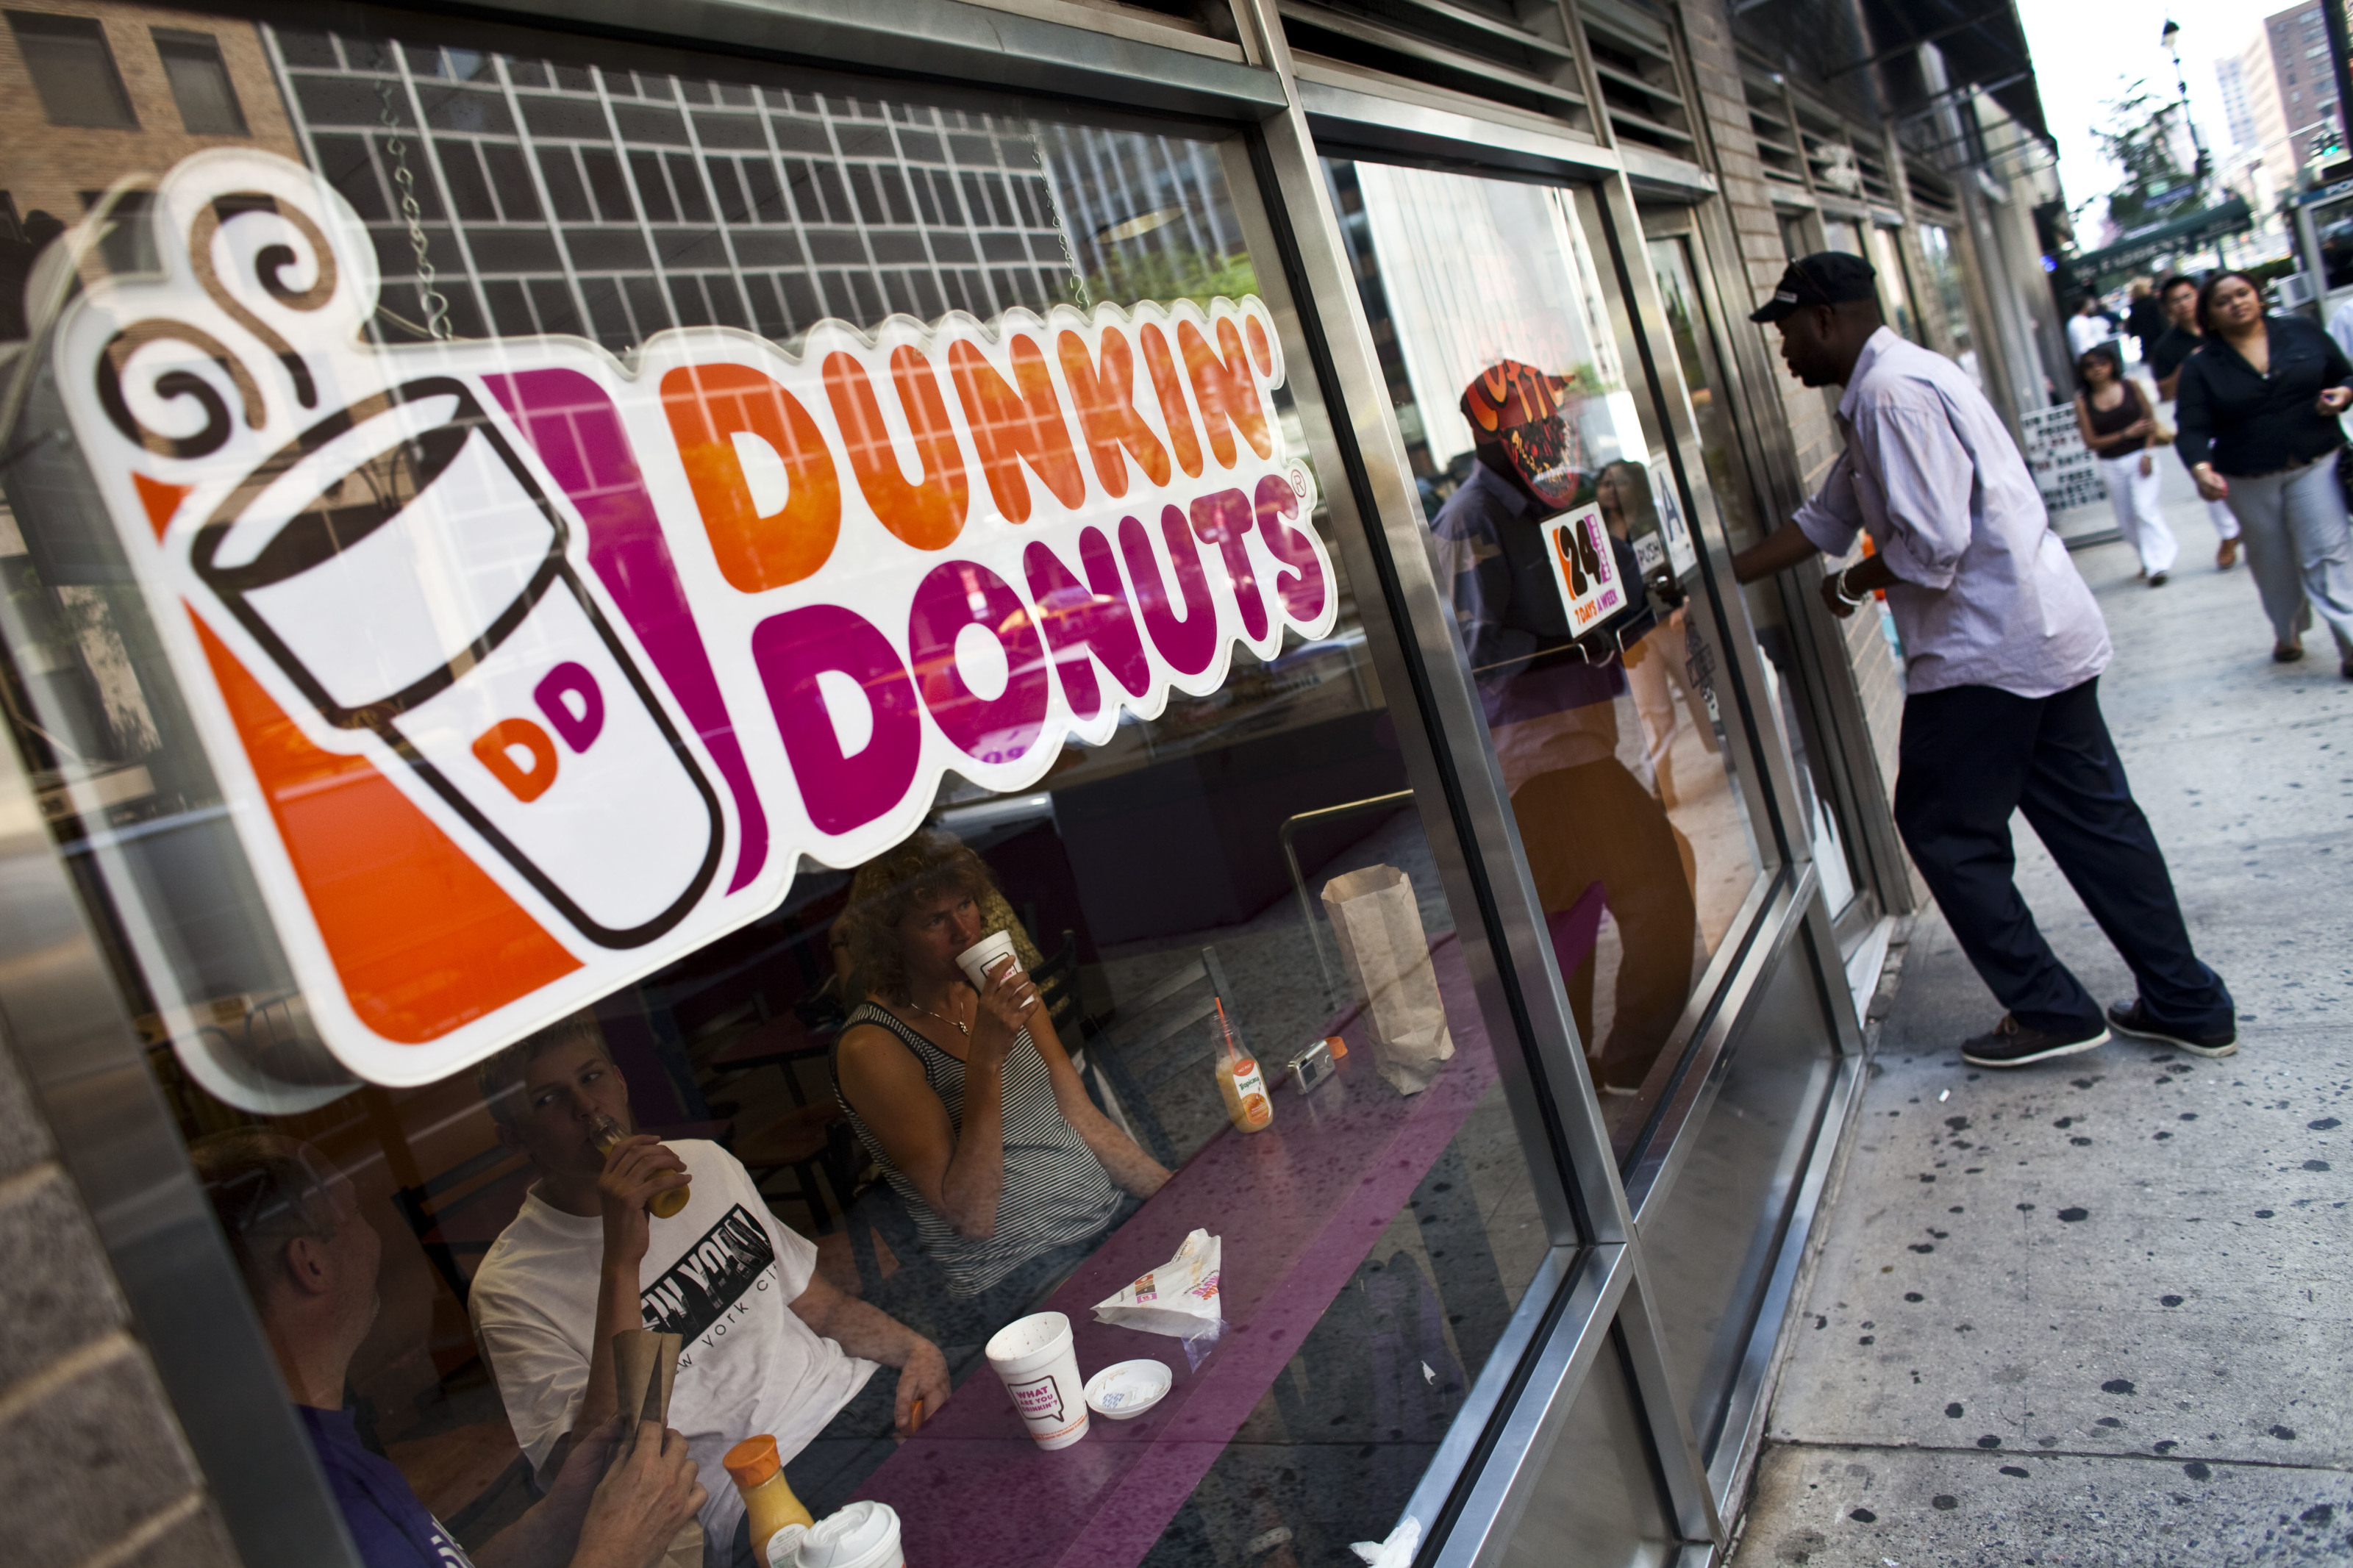 Get your bag of bacon at Dunkin' today